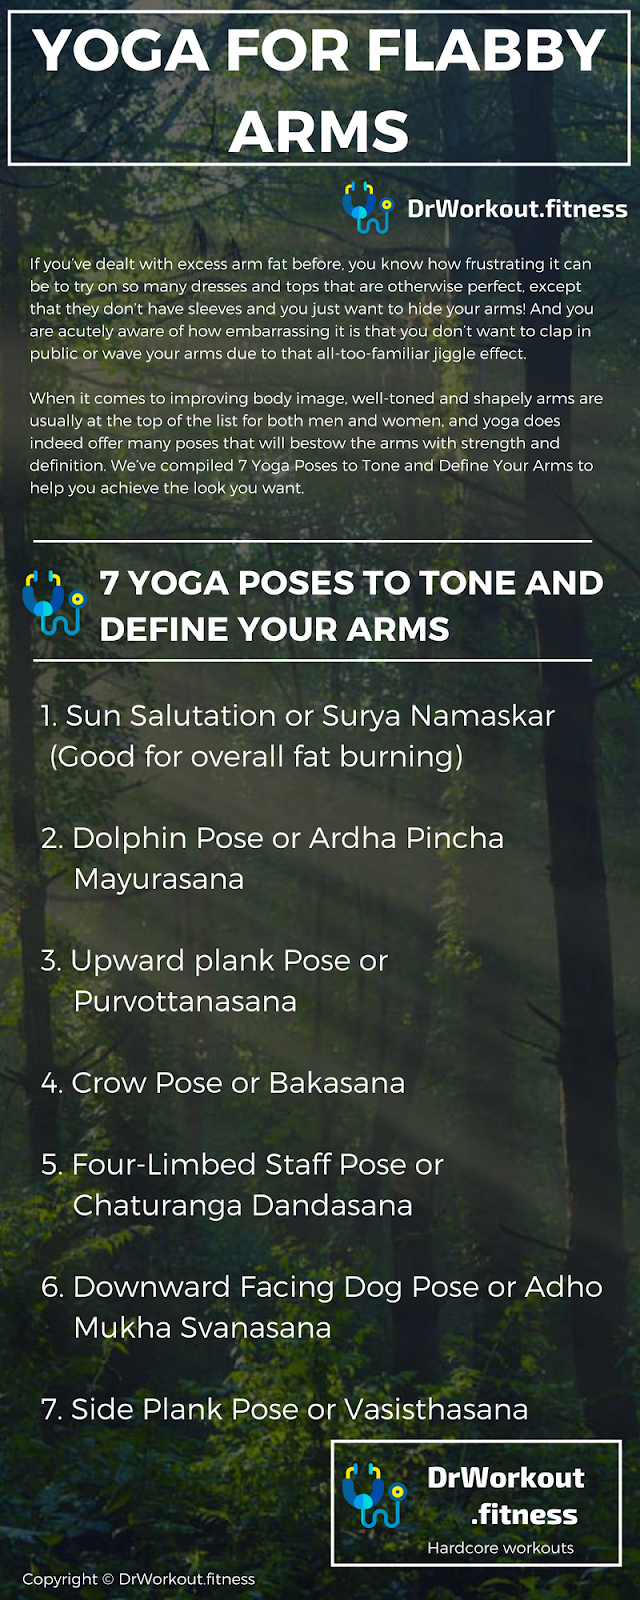 How to lose arm fat with yoga